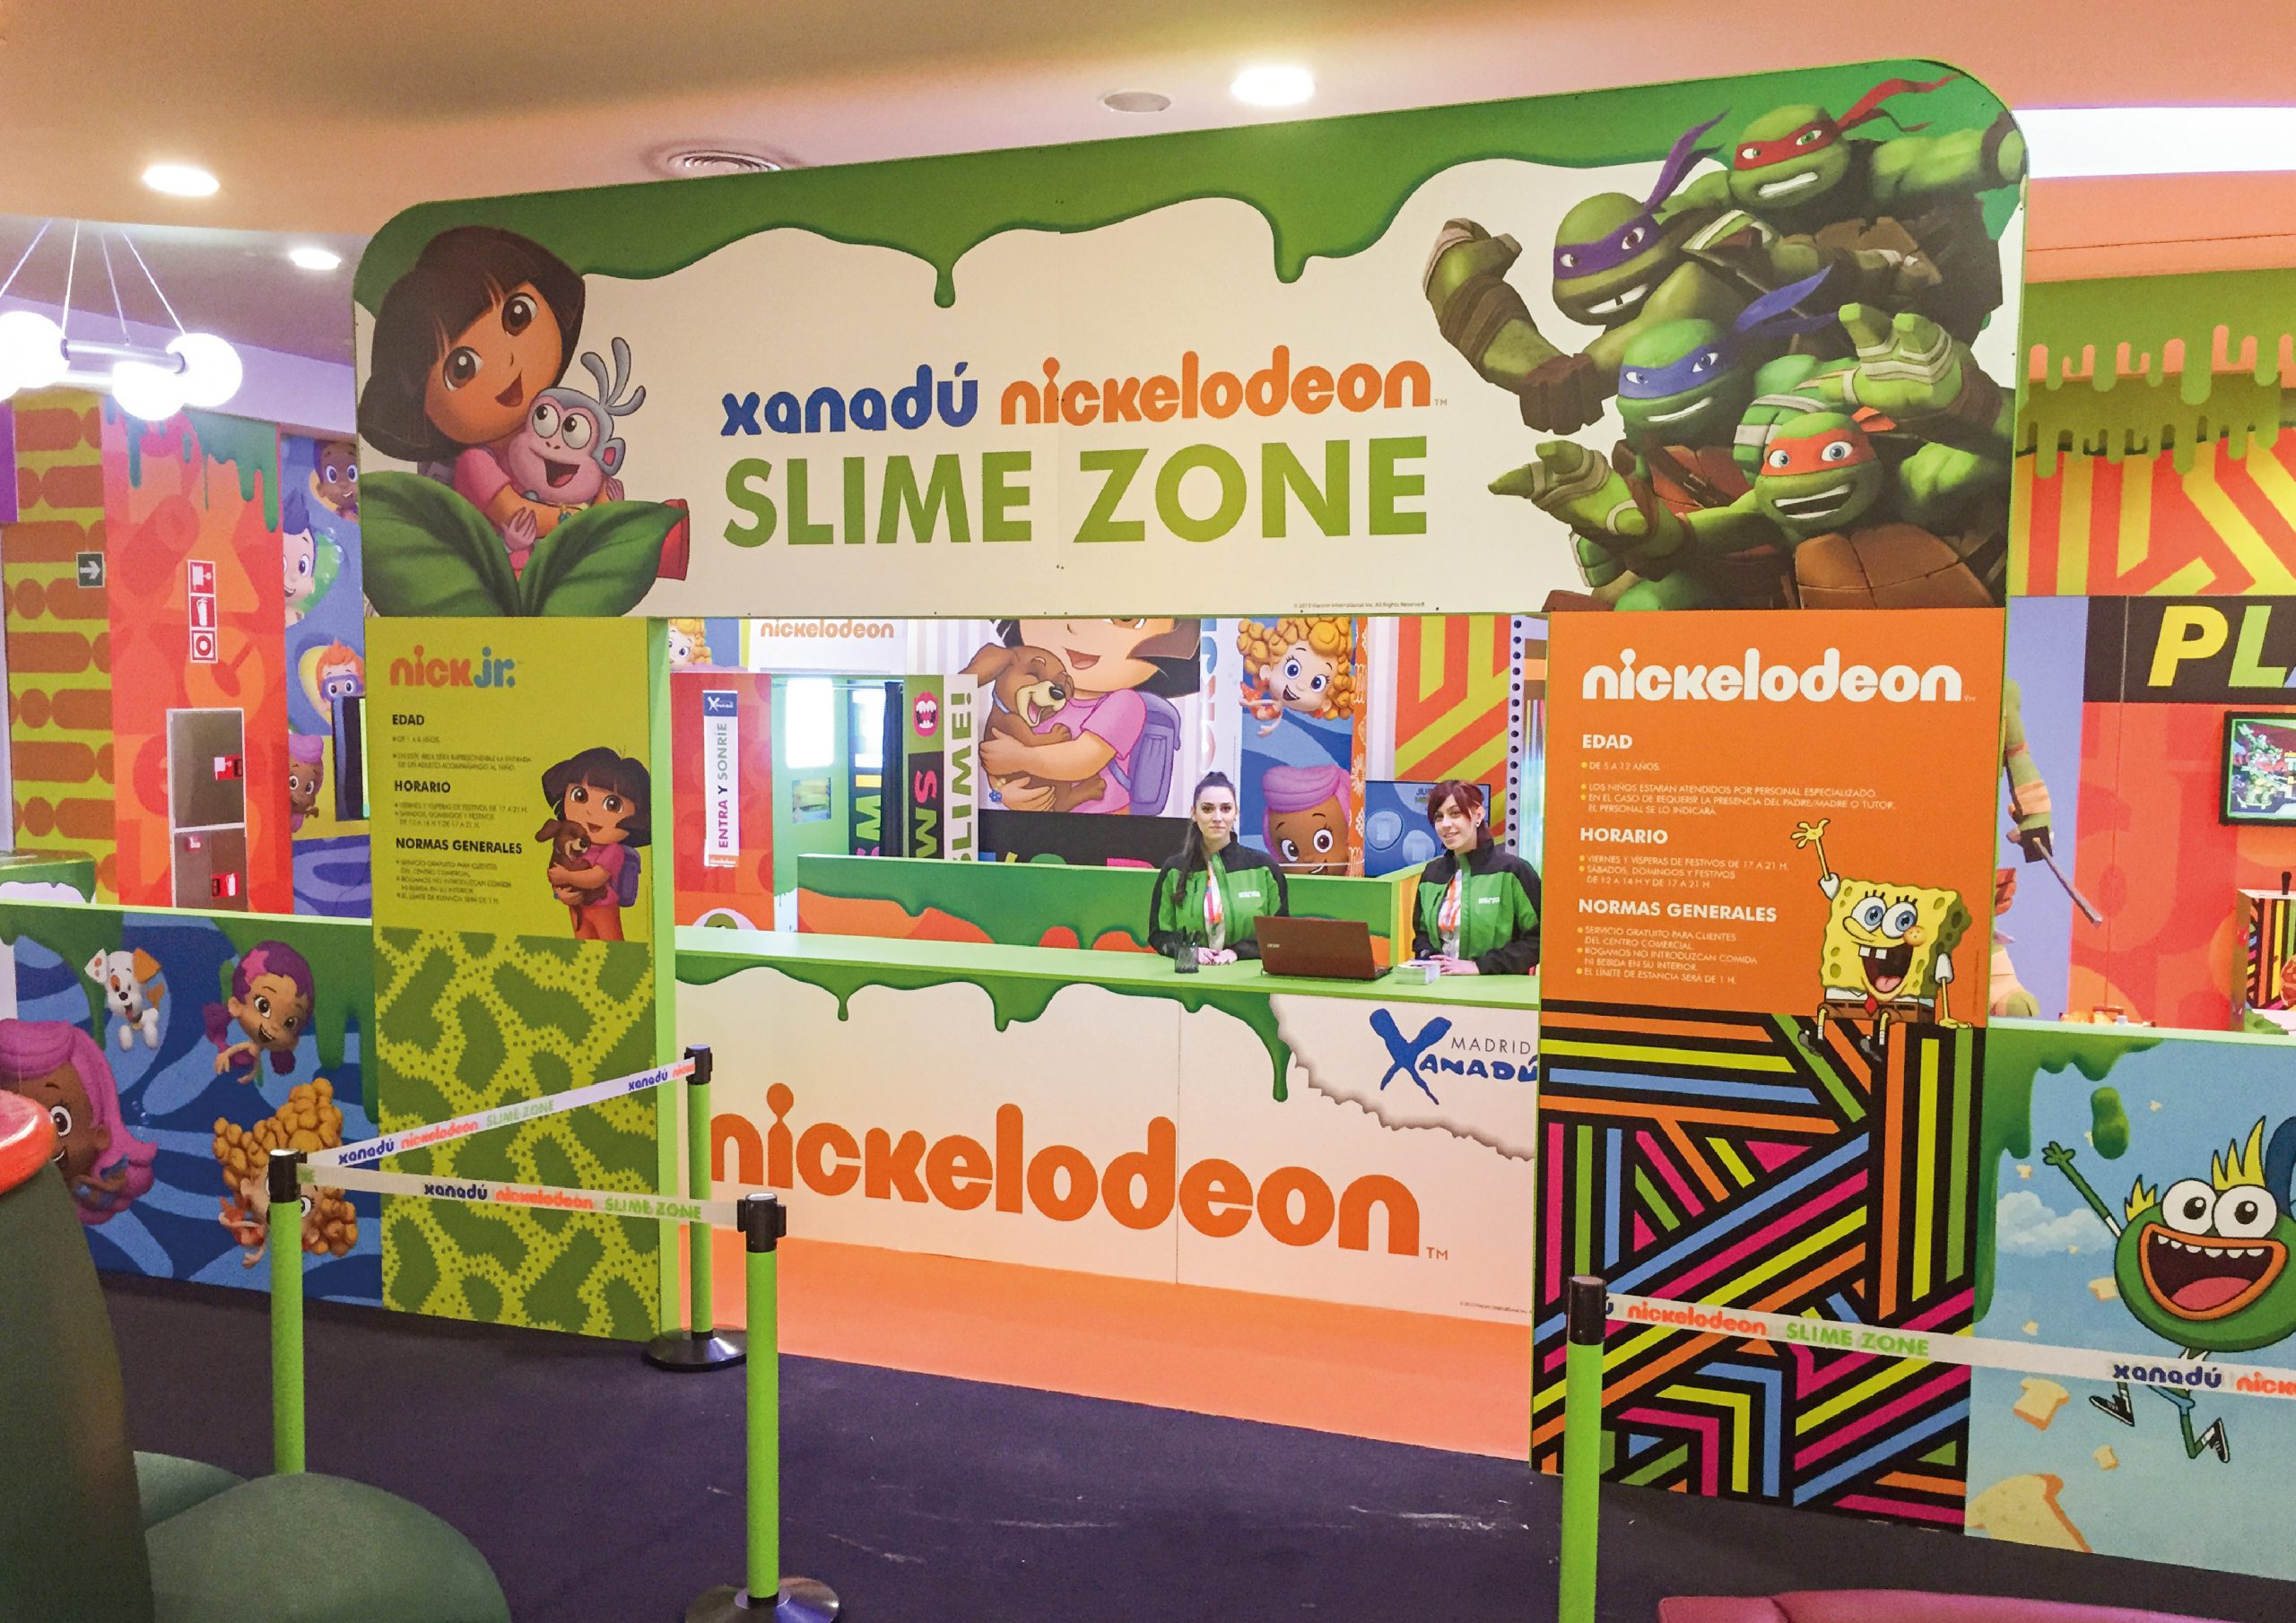 SLIME ZONE – NICKELODEON